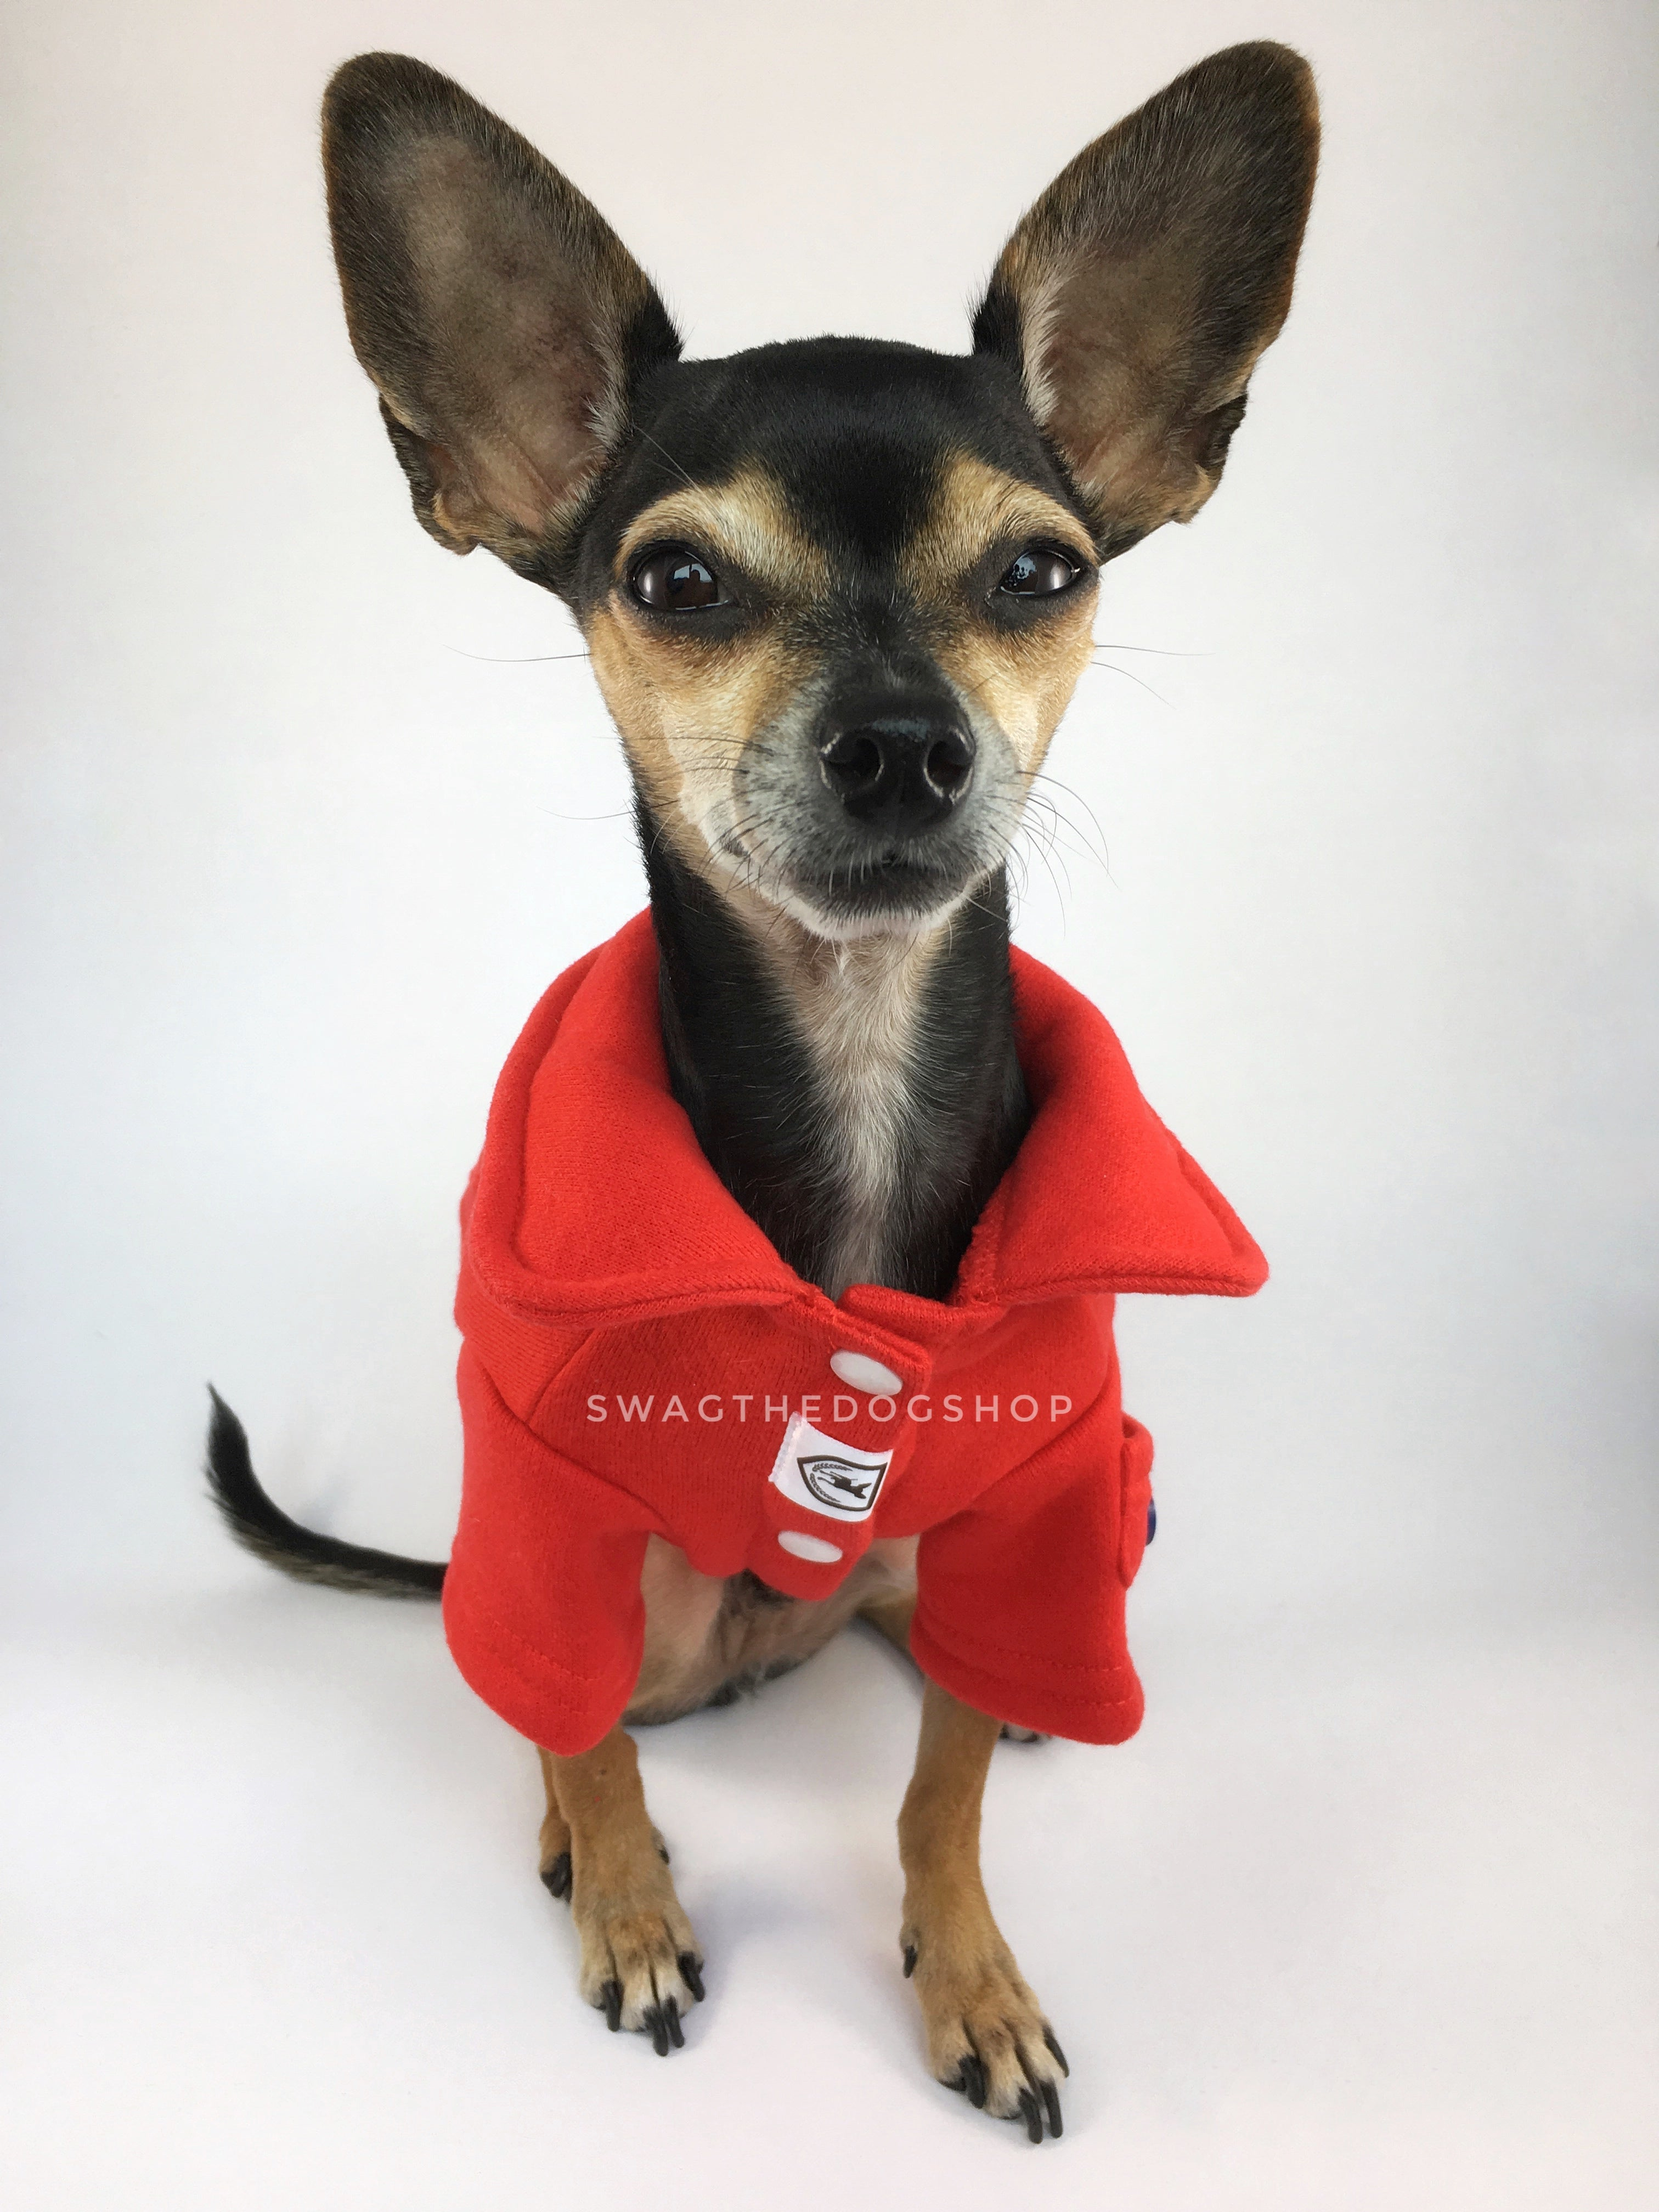 Yachtsman Red Shirt - Full Front View of Cute Chihuahua Dog Wearing Shirt. Red Shirt with Fleece Inside